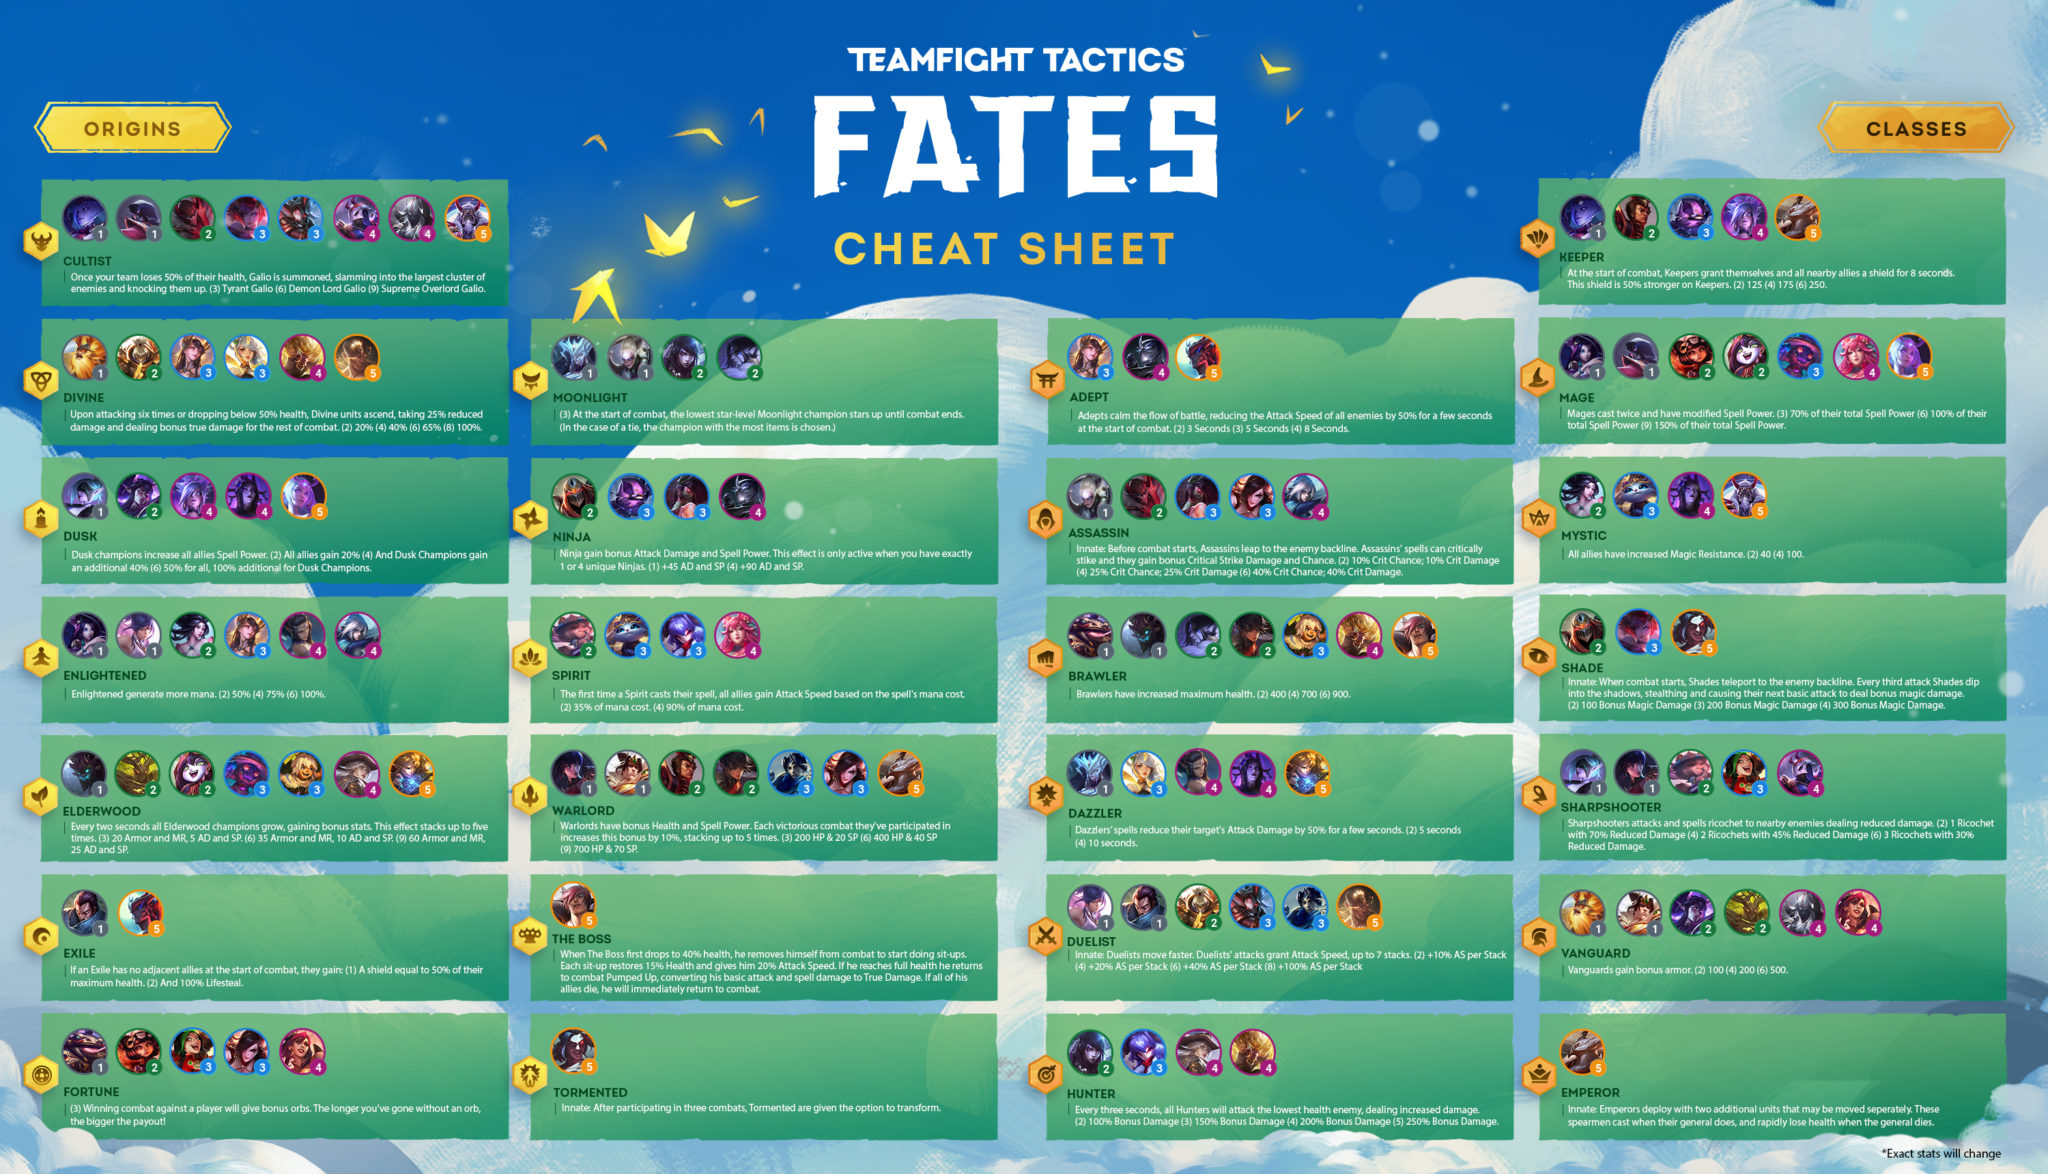 Set 4 Fates cheat sheat